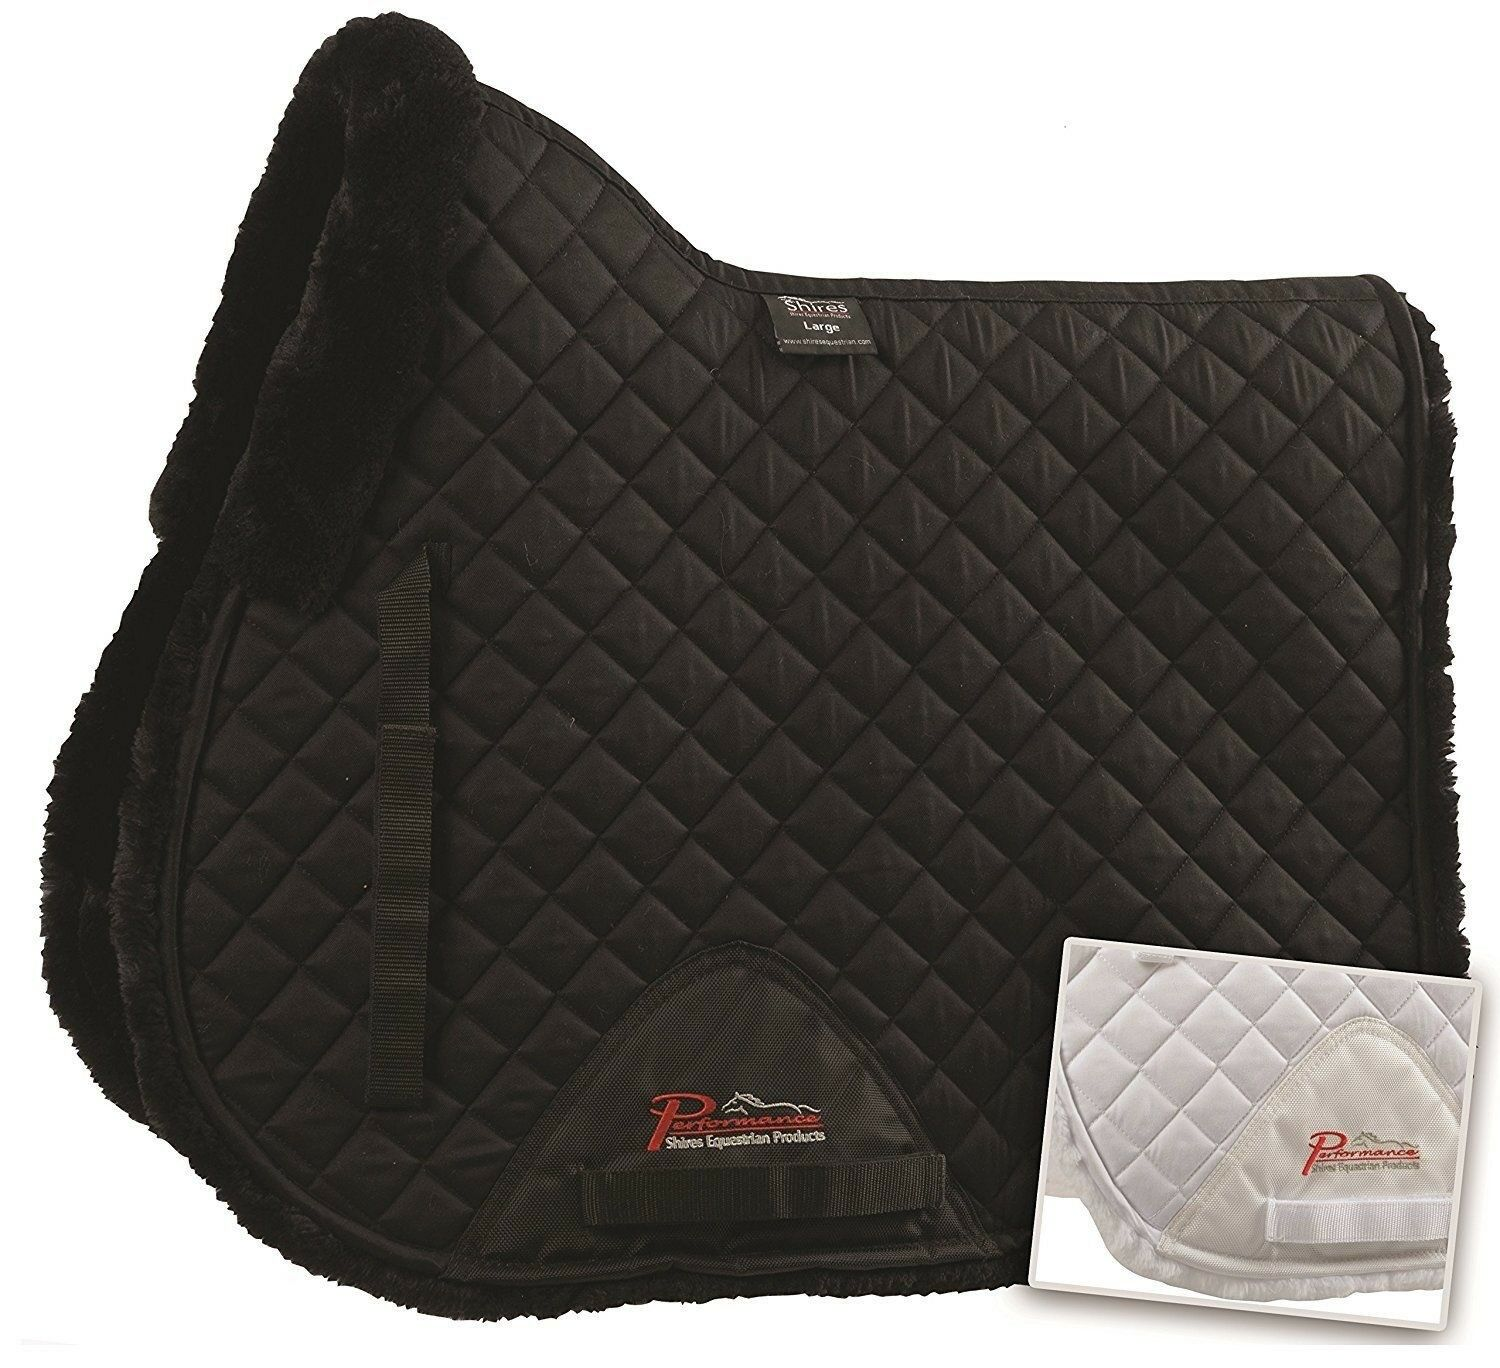 Shires All Purpose Supafleece Saddle Pad Increased Airflow - White White Large